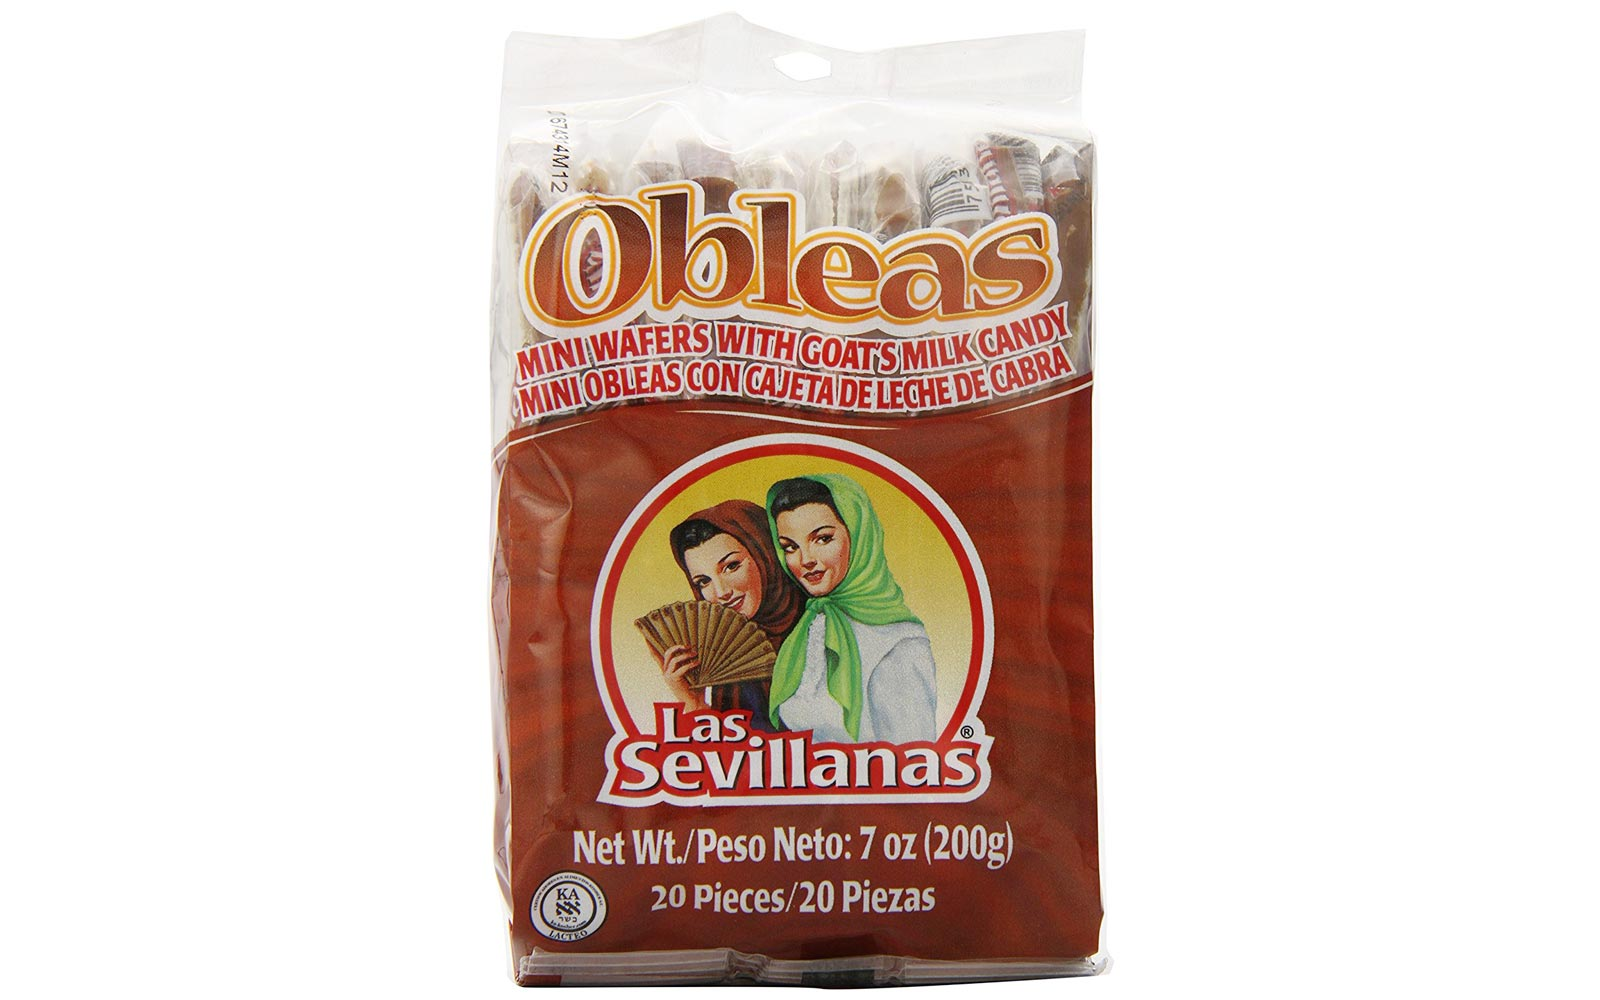 Obleas from Mexico